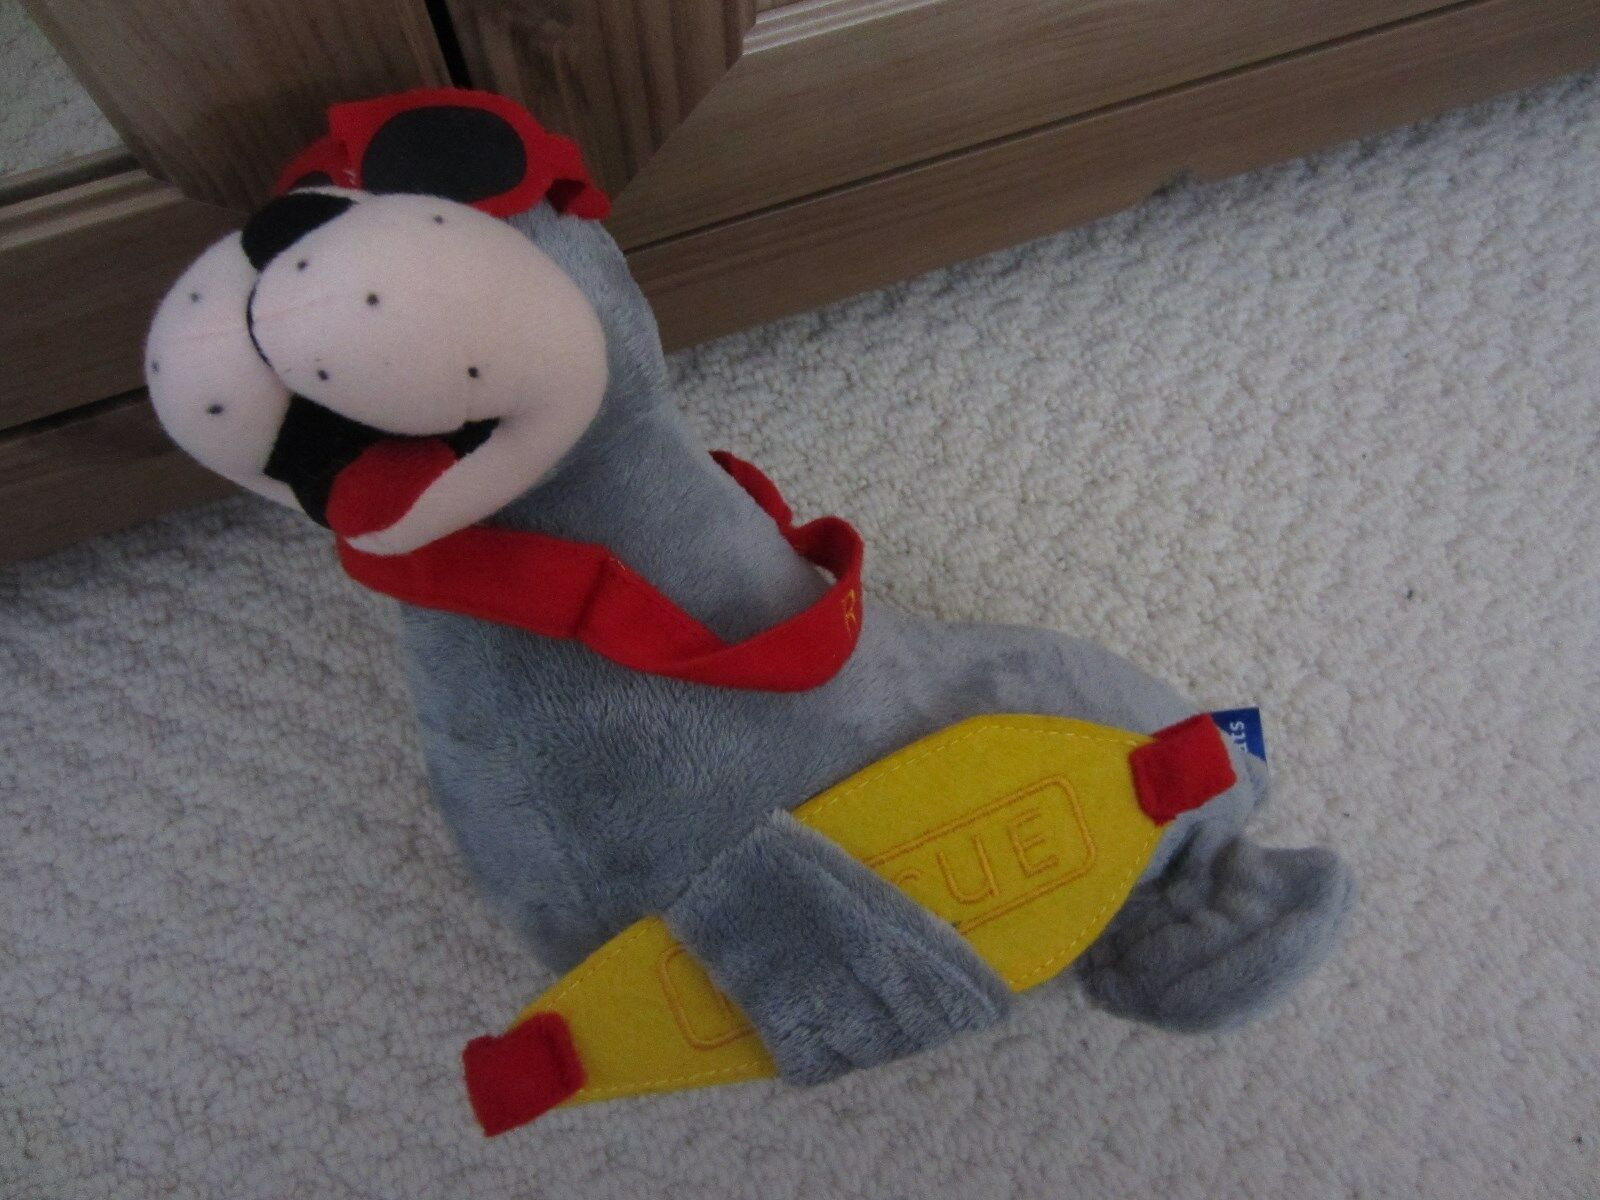 RNLI LIFEBOATS souvenir SEAL SOFT TOY very good condition CUTE